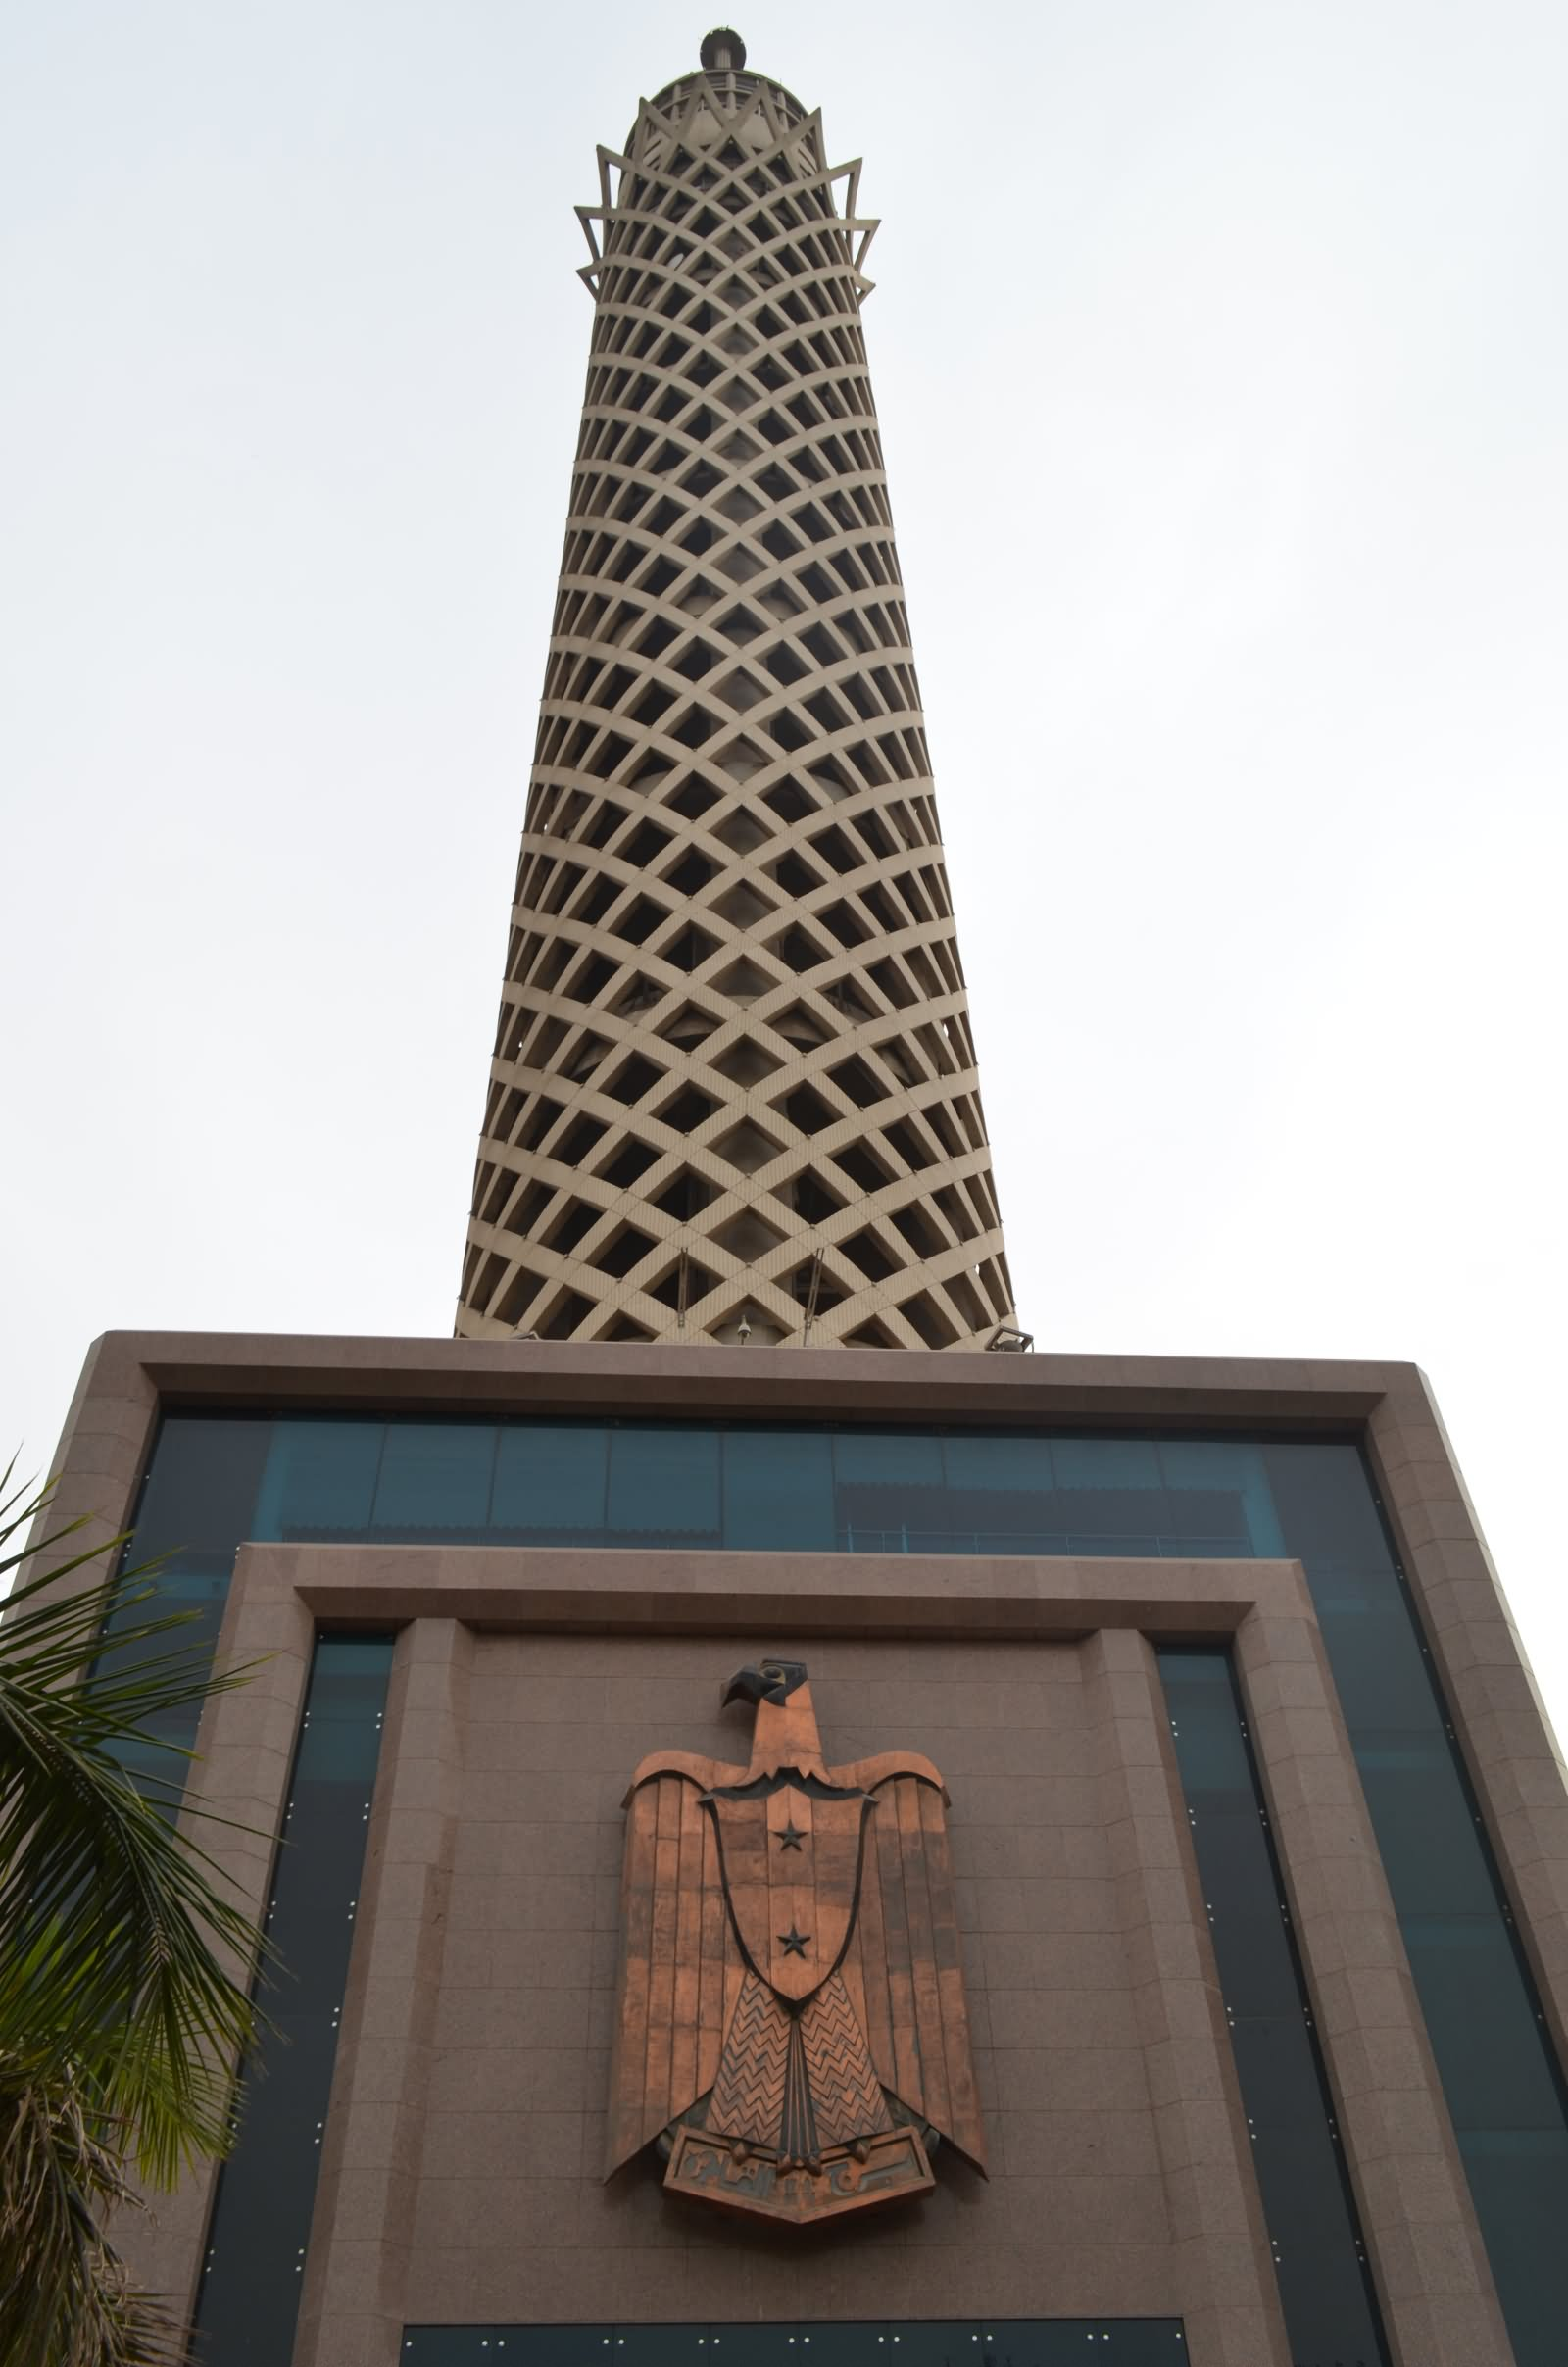 Entrance Of The Cairo Tower, Cairo